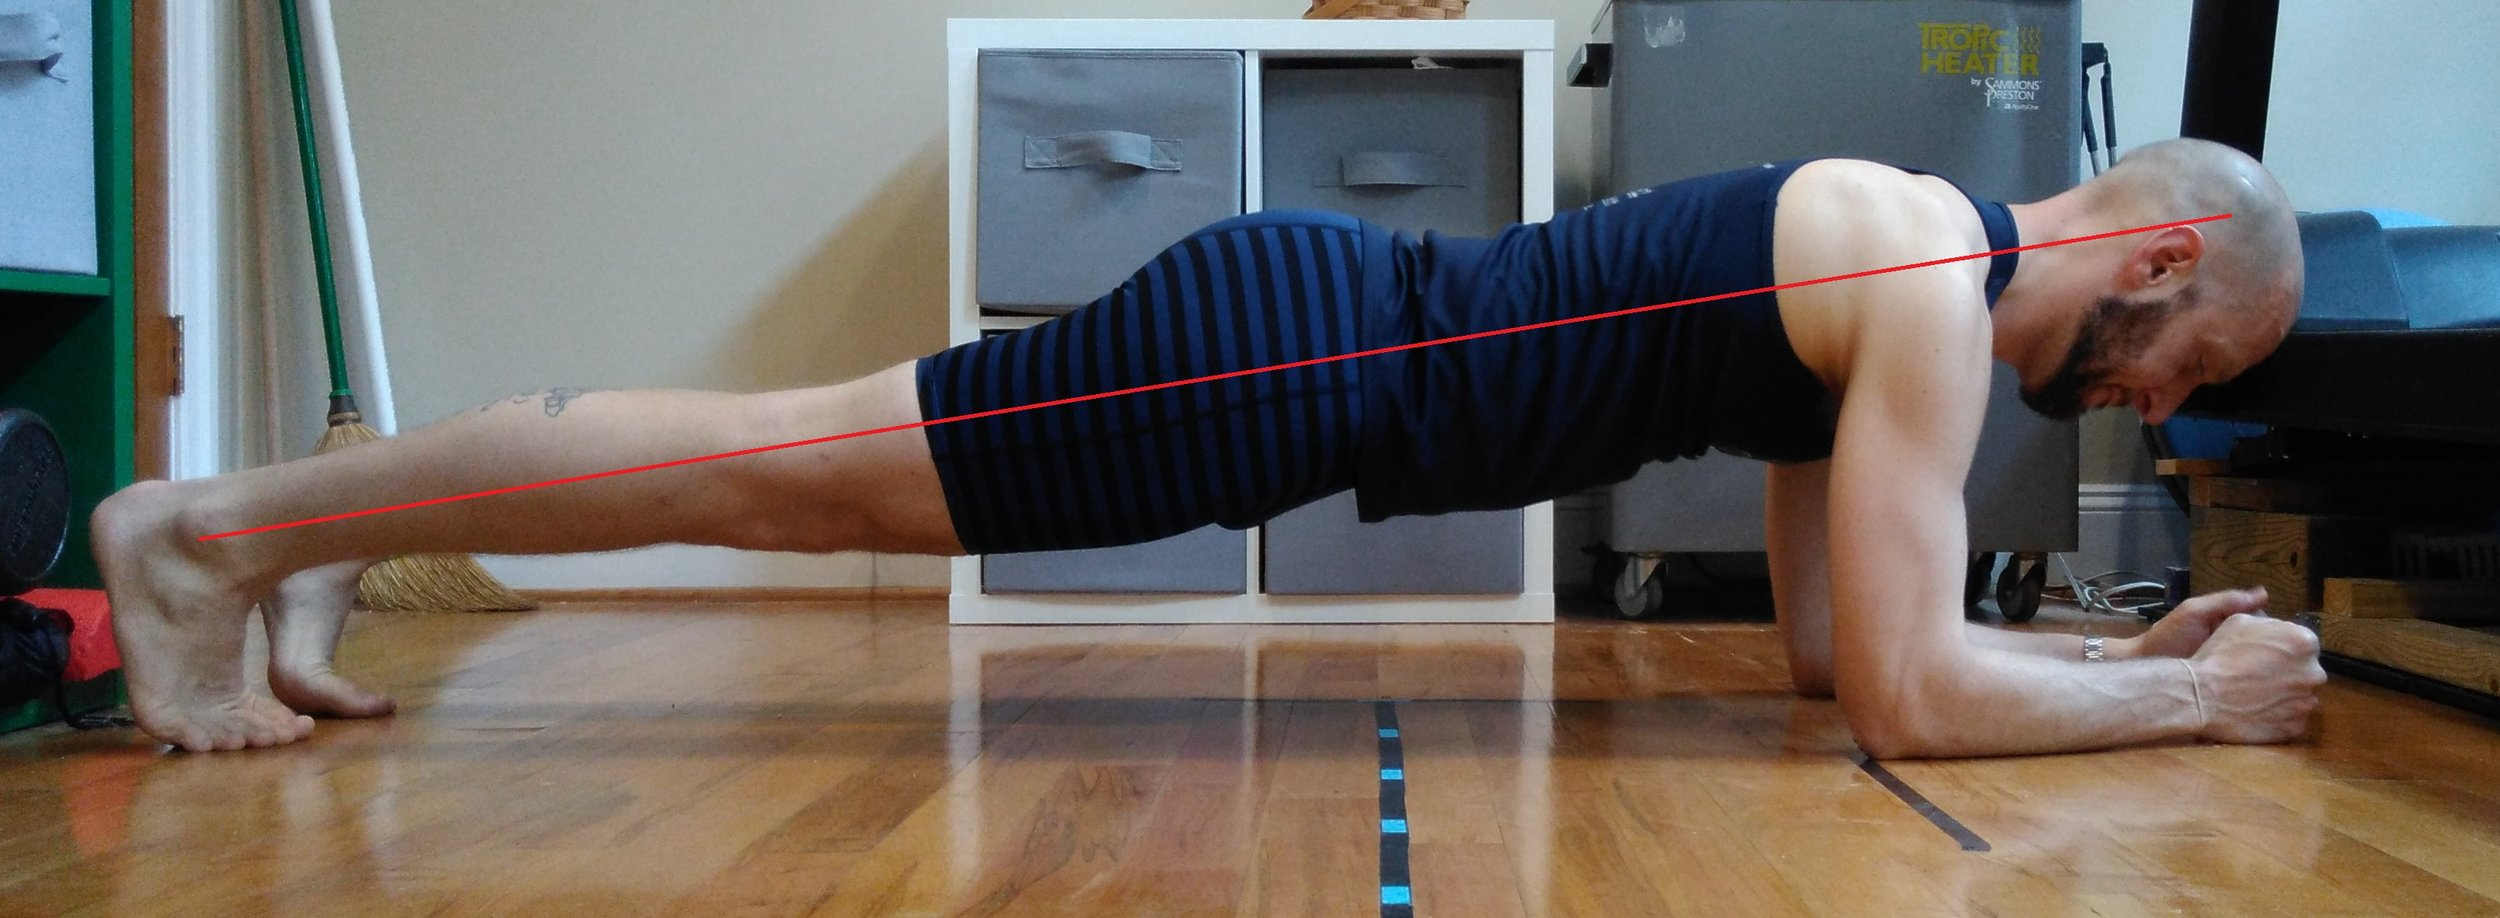 When planking in correct posture the body should be in a straight line from the ankle, passing behind the knee, through the center of the hip, through the shoulder, and just behind the ear.